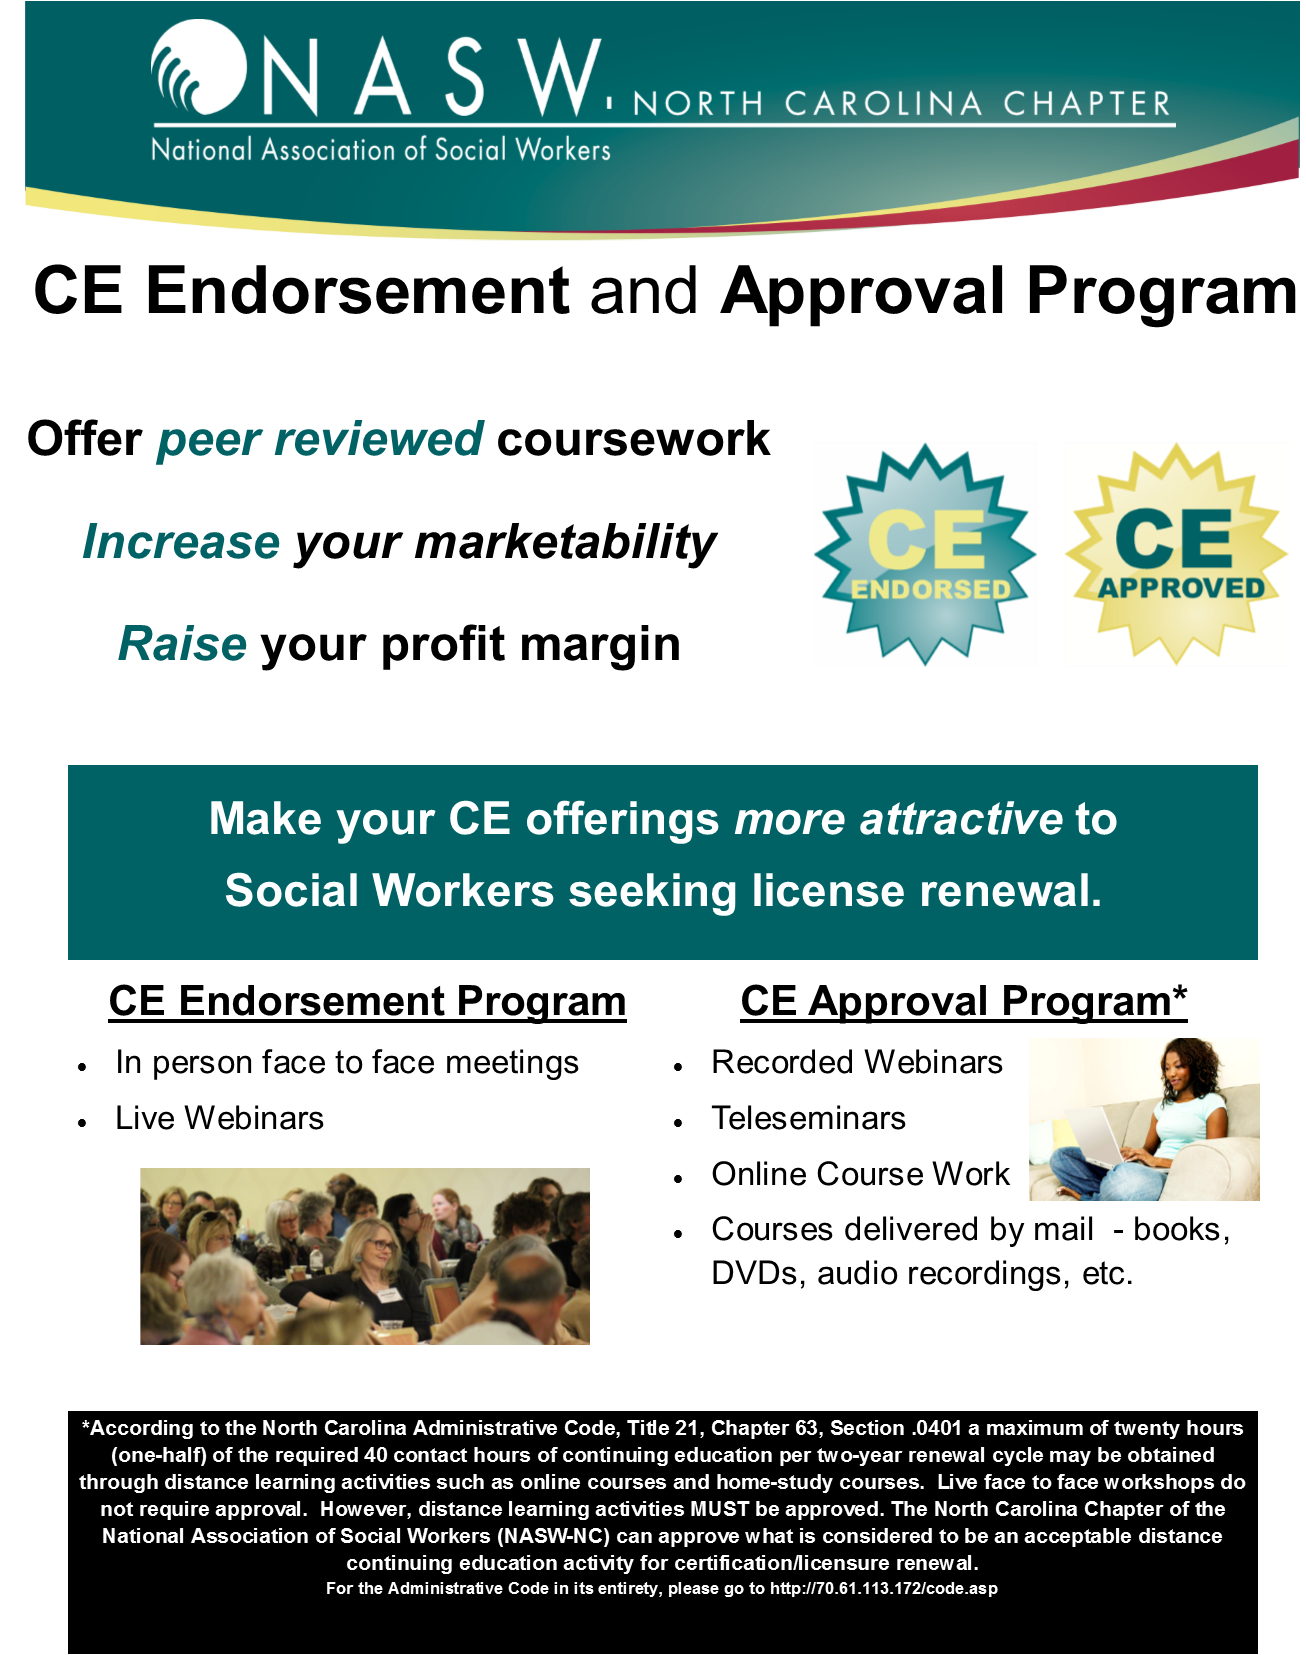 Ce Endorsement Approval Programs National Association Of Social